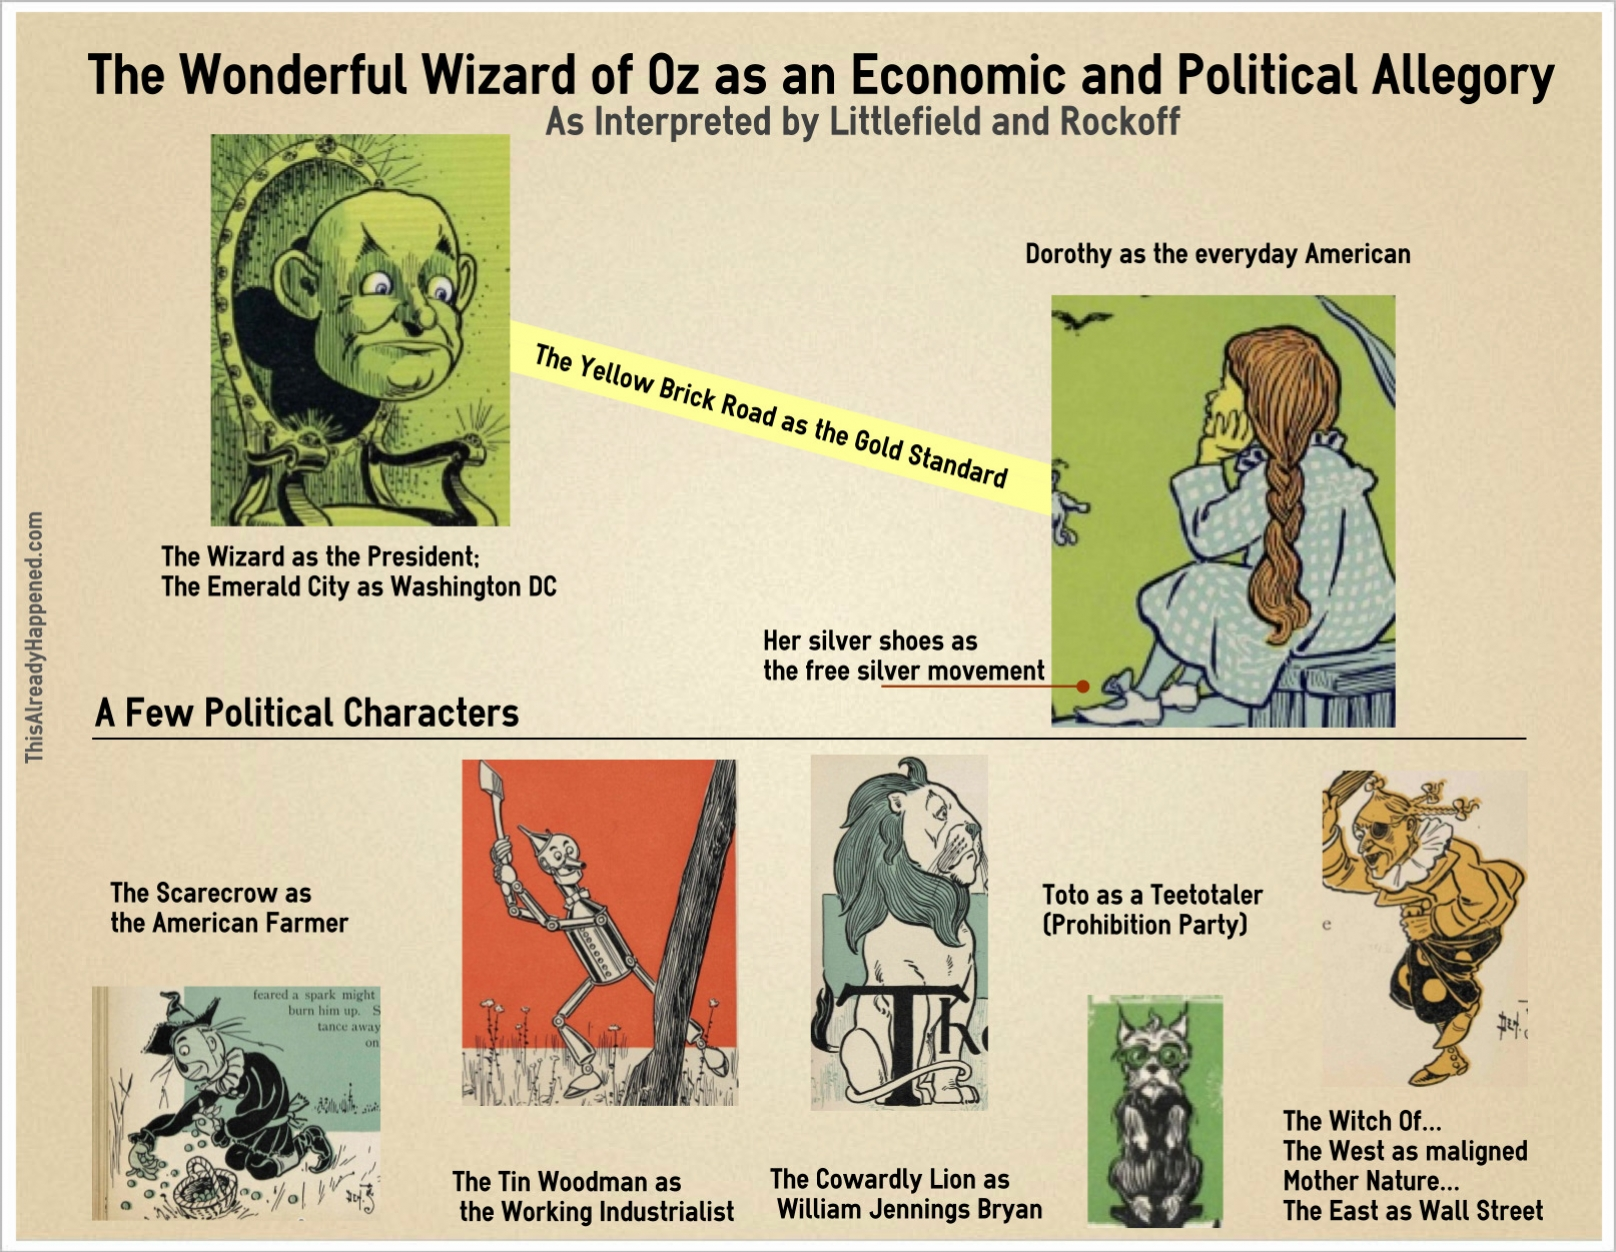 The Wonderful And Economic Wizard Of Oz